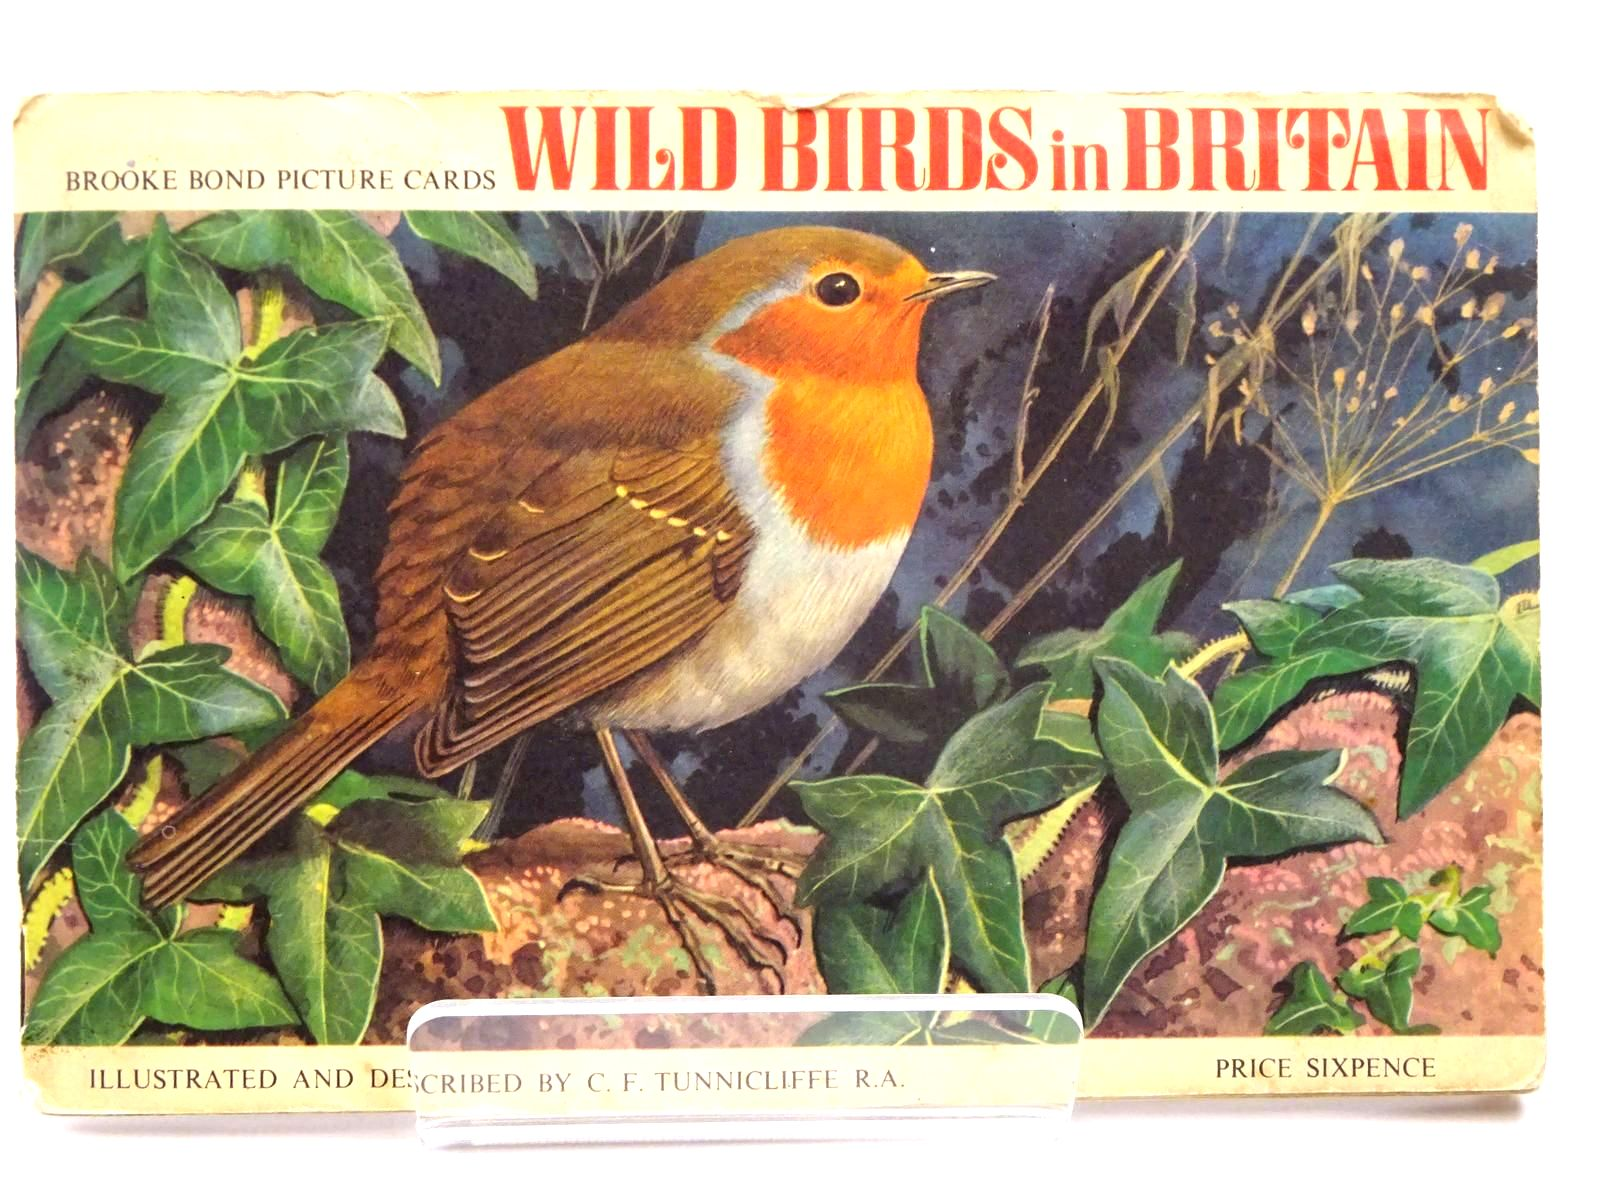 Photo of WILD BIRDS IN BRITAIN written by Tunnicliffe, C.F. illustrated by Tunnicliffe, C.F. published by Brooke Bond (STOCK CODE: 2130442)  for sale by Stella & Rose's Books